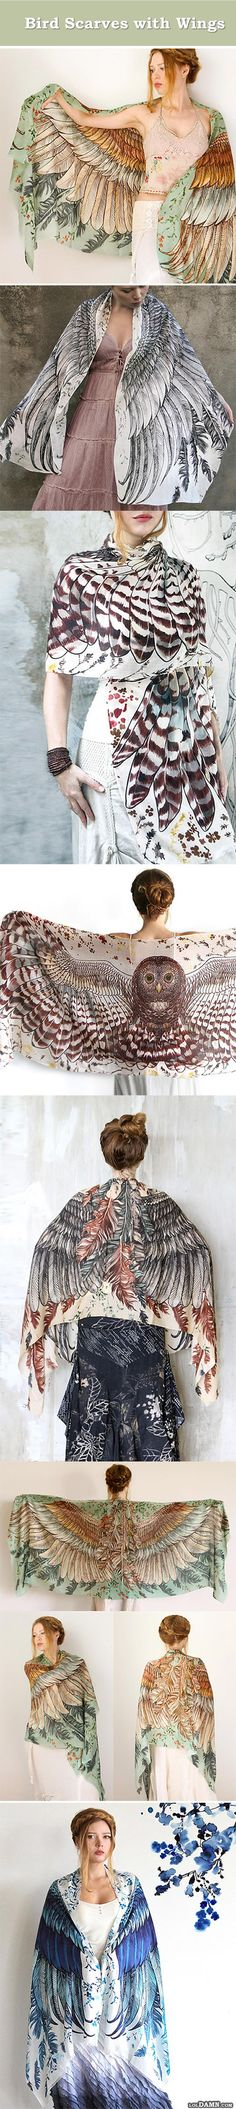 Bird scarves with wings, very old concept beautifully done. scarves for women.